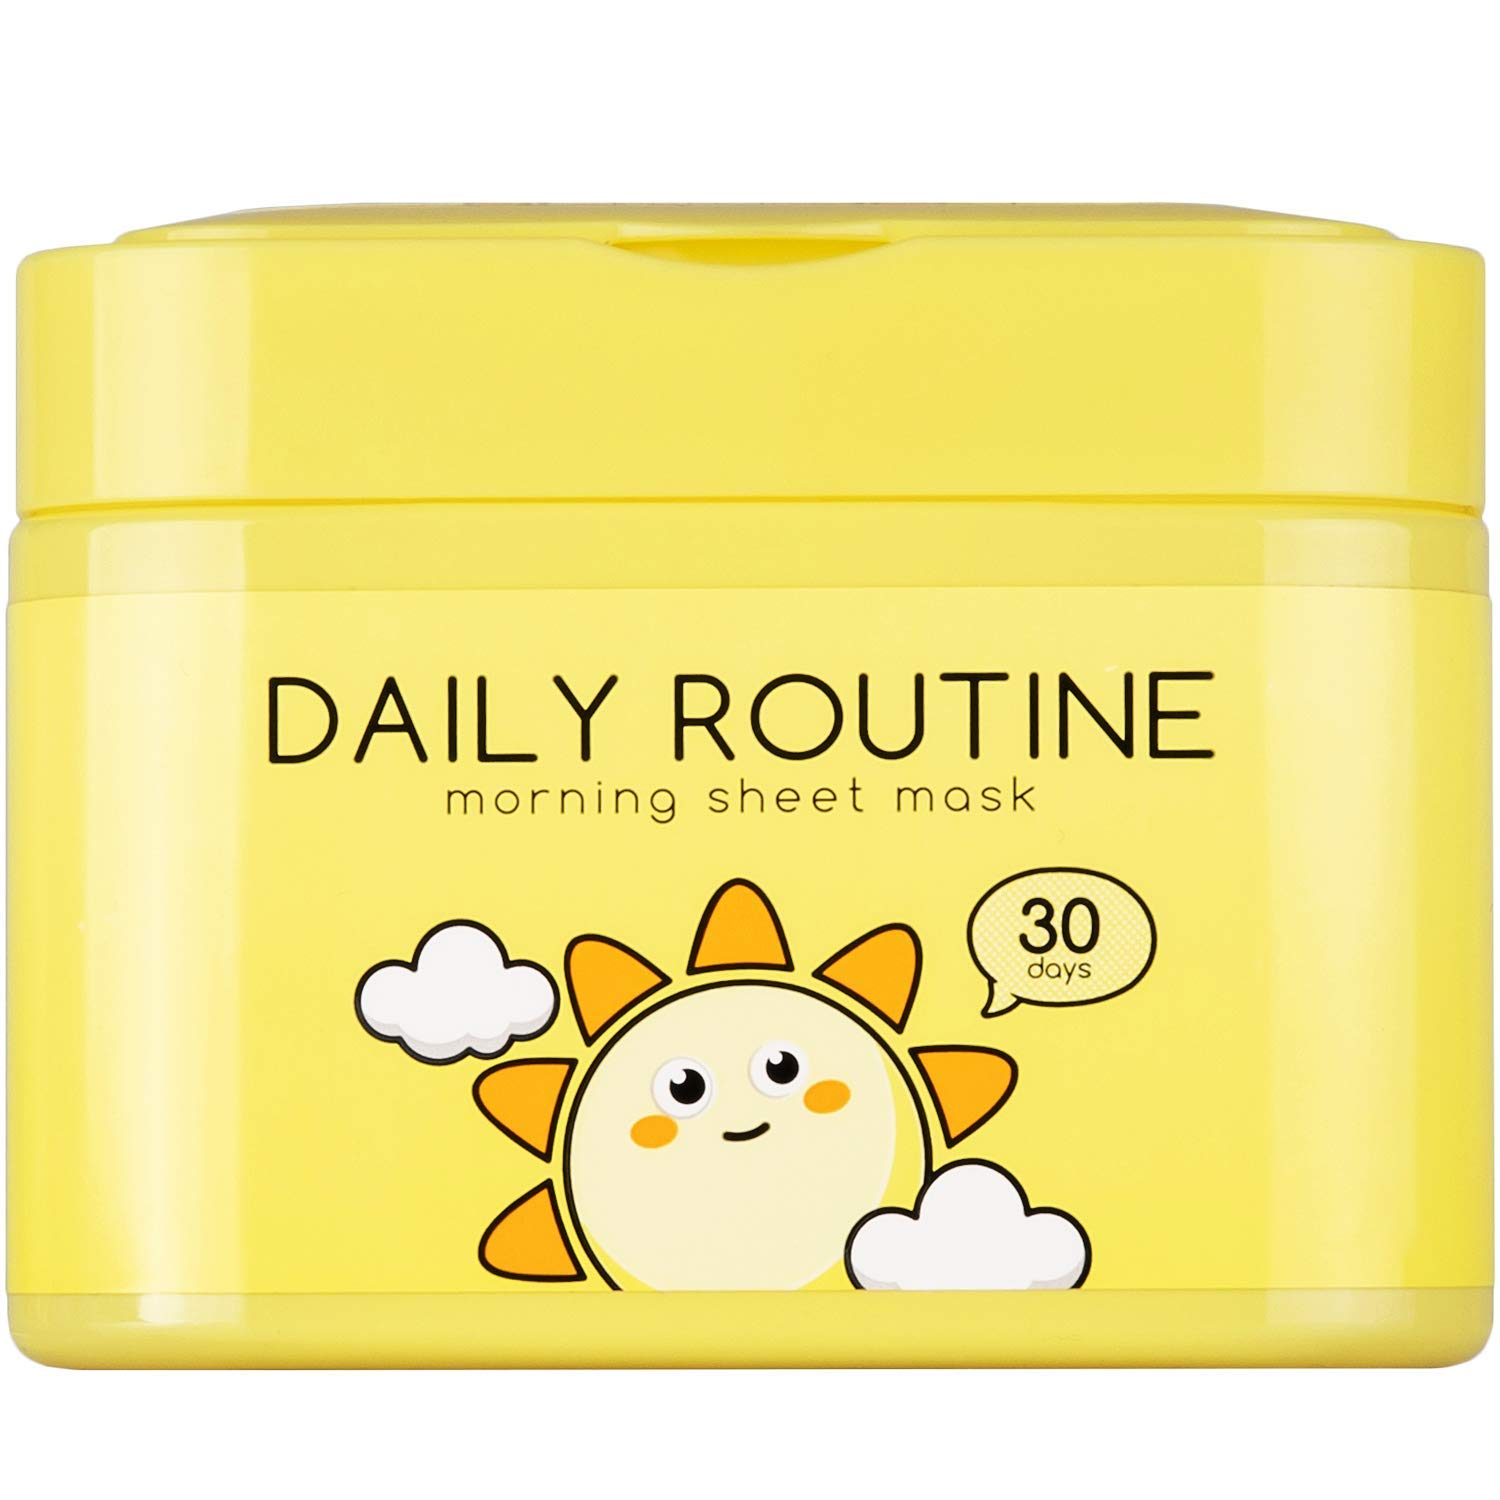 QTBT - Daily Routine Morning Face Mask Sheet Hydro Boost